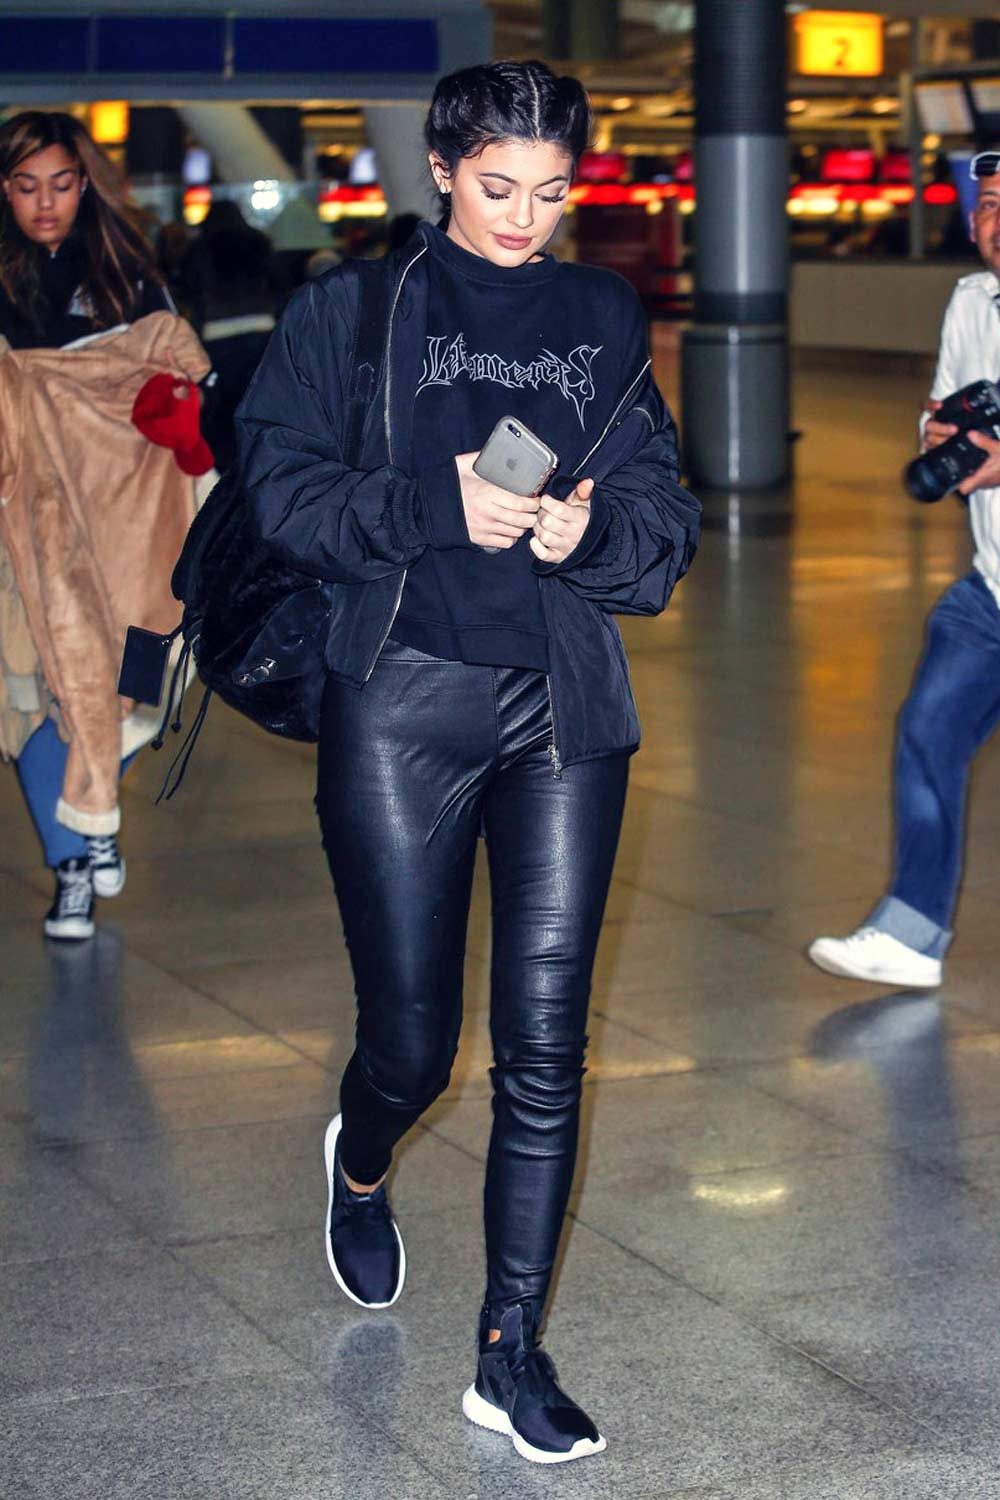 Kylie Jenner Arrives At Jfk Airport Leather Celebrities